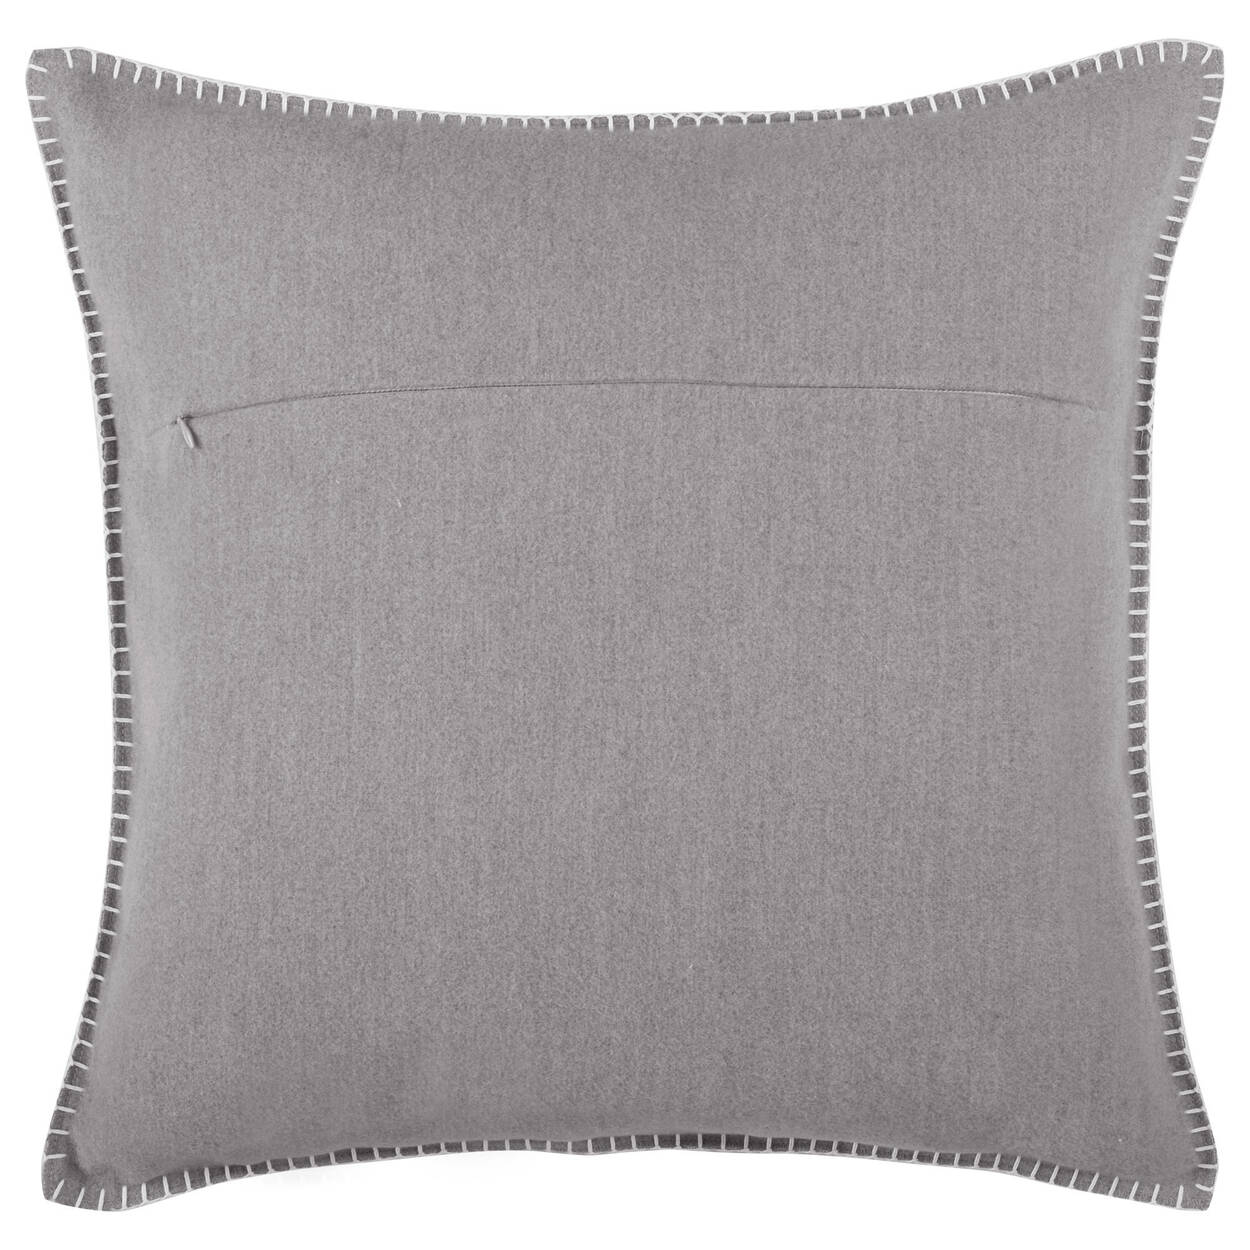 "Warm and Cozy Decorative Pillow 19"" X 19"""